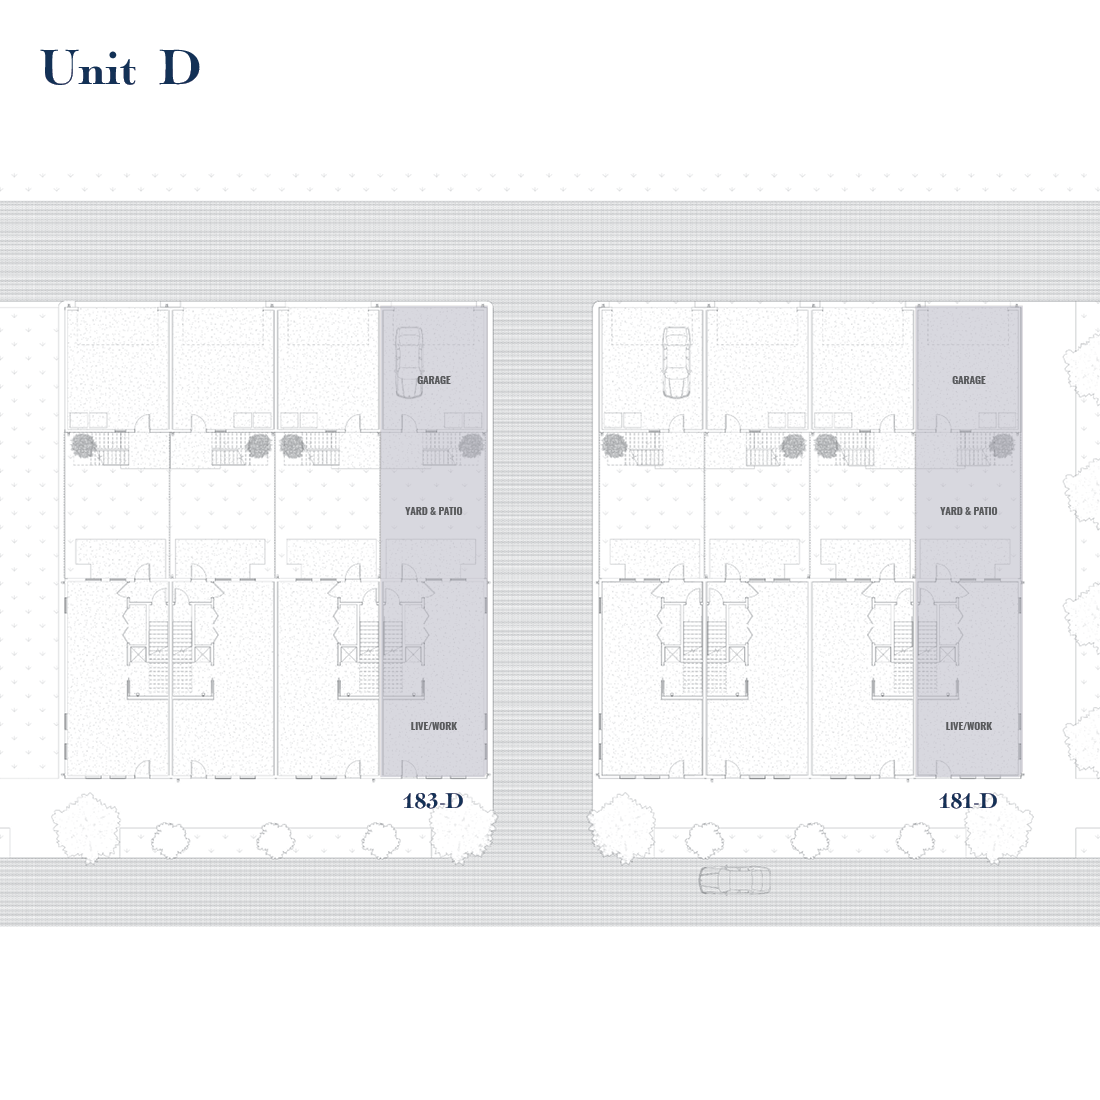 Unit D Site Plan | East Wilbur LiveWorks, Downtown Lake Mary